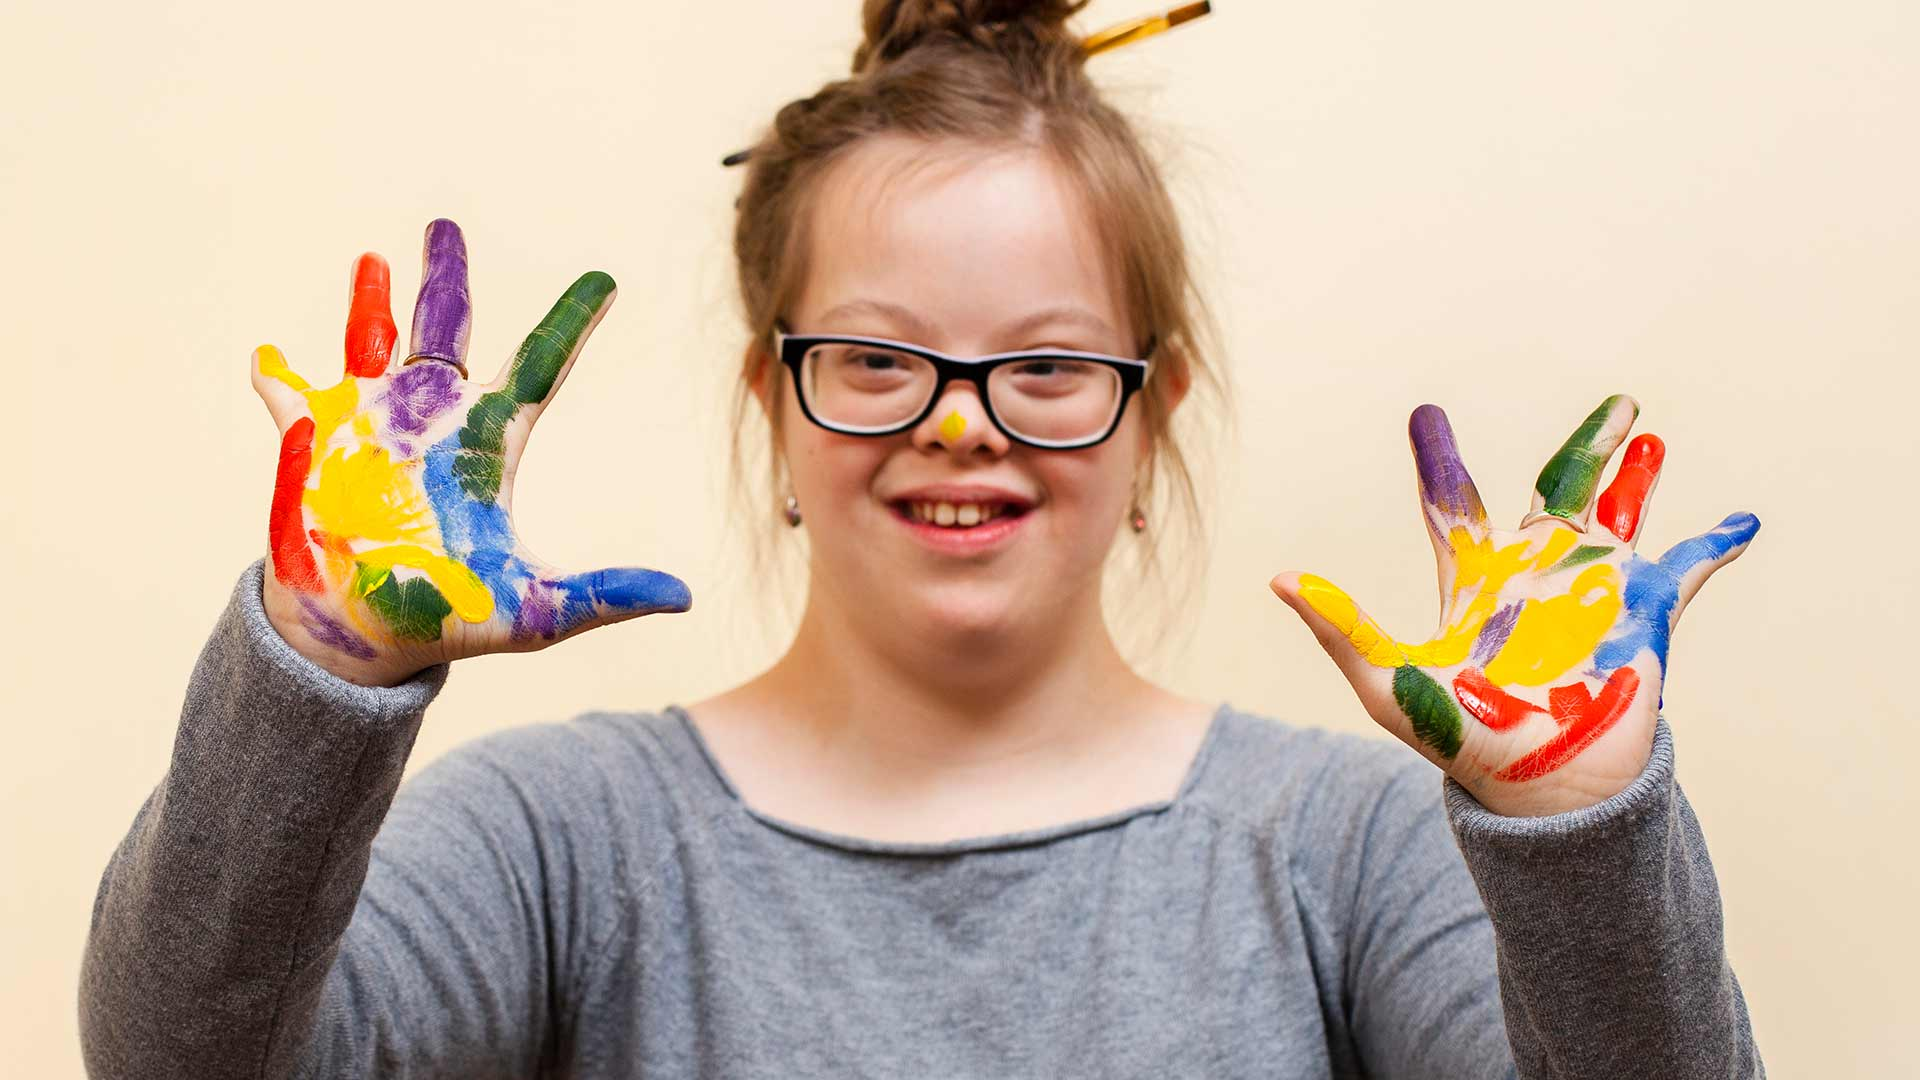 girl with down syndrome showing off her colorful palms